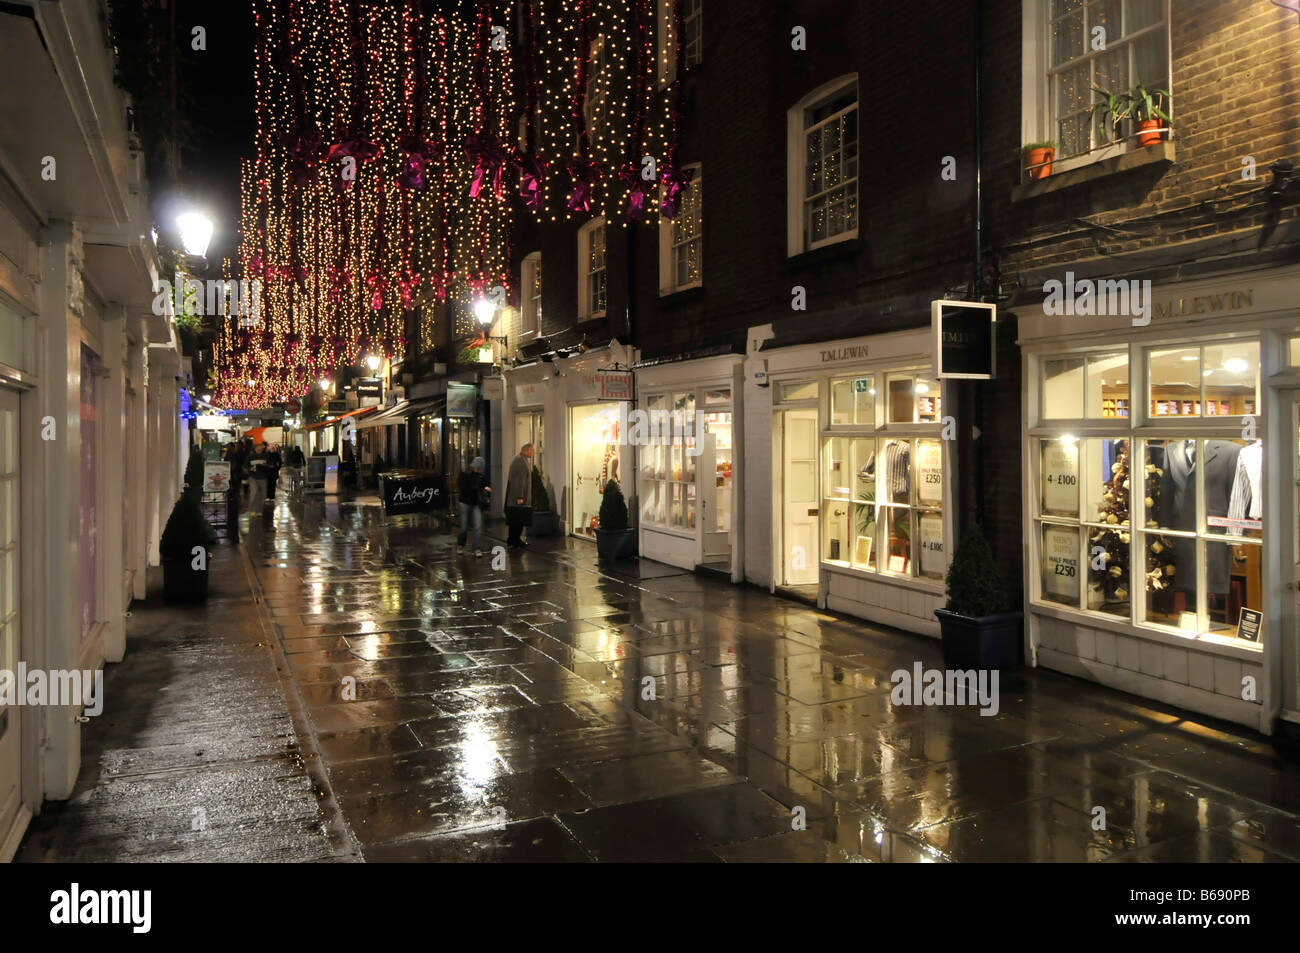 Christmas decorations St Christophers Place shopping & eating out area off 'Oxford Street' in Londons - Stock Image